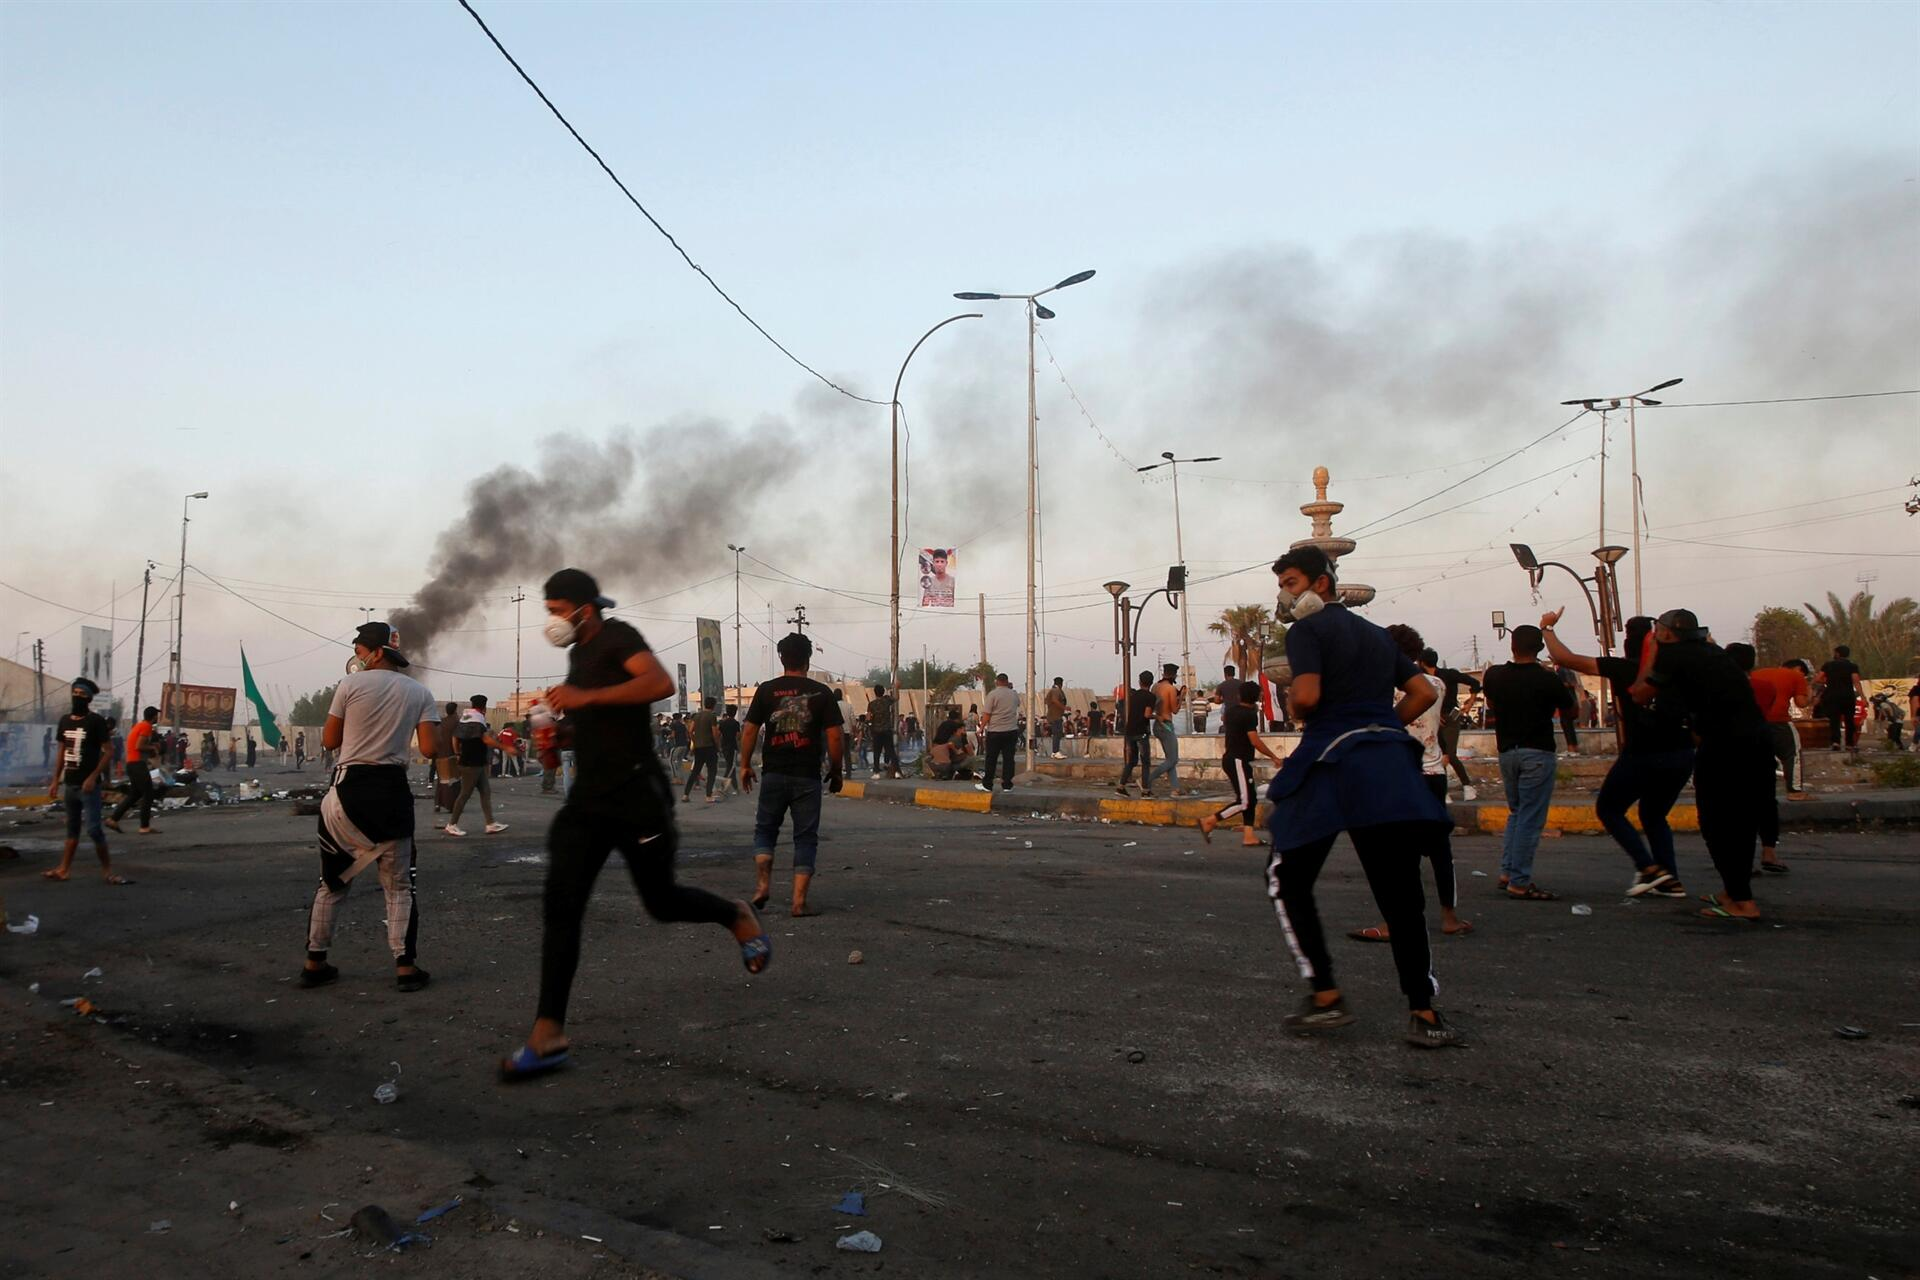 Iraqi PM concedes 'mistakes made' as protesters pushed back in Baghdad